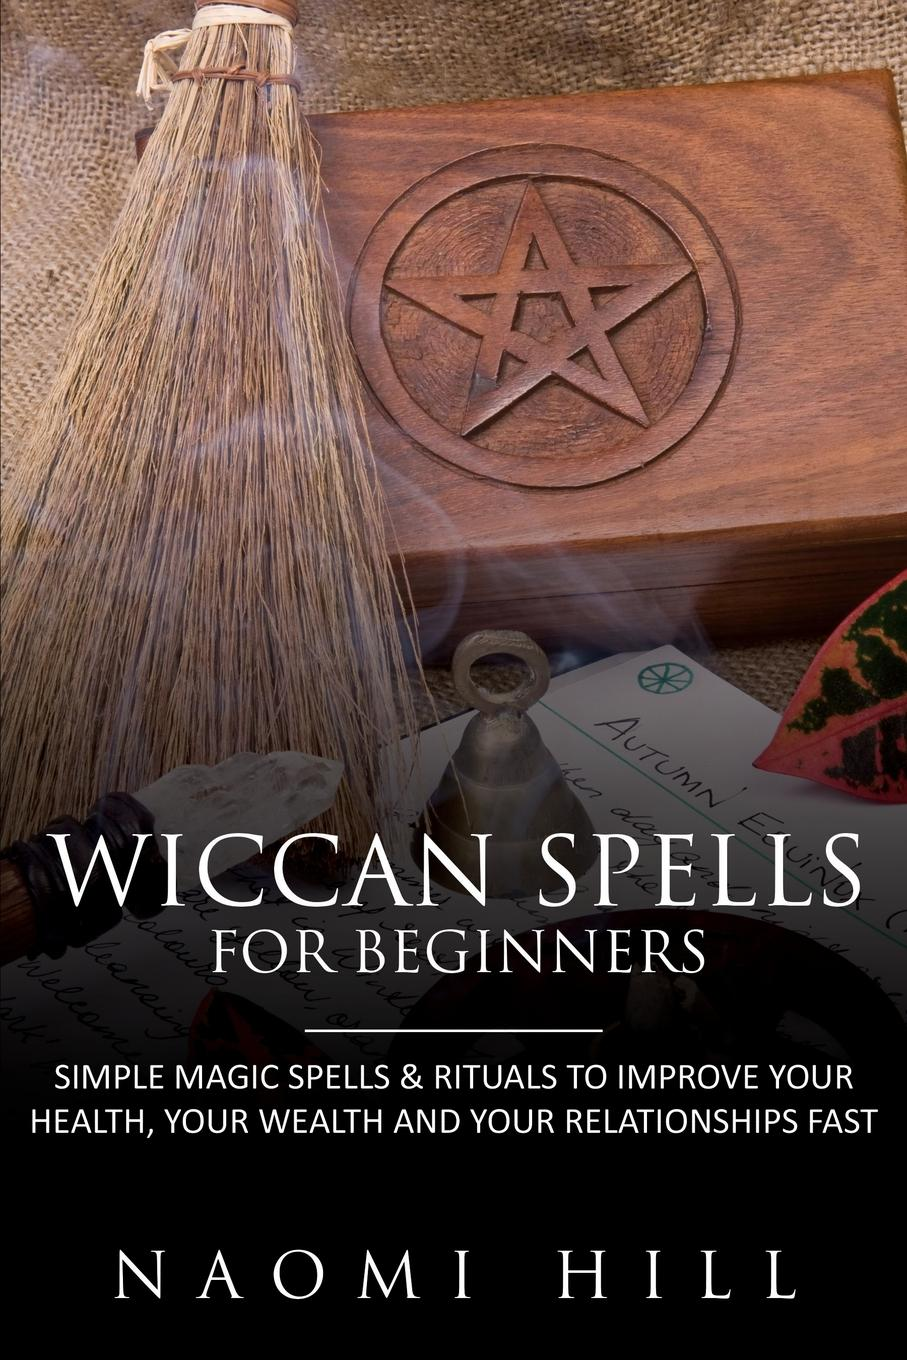 Wiccan Spells for Beginners   Walmart com